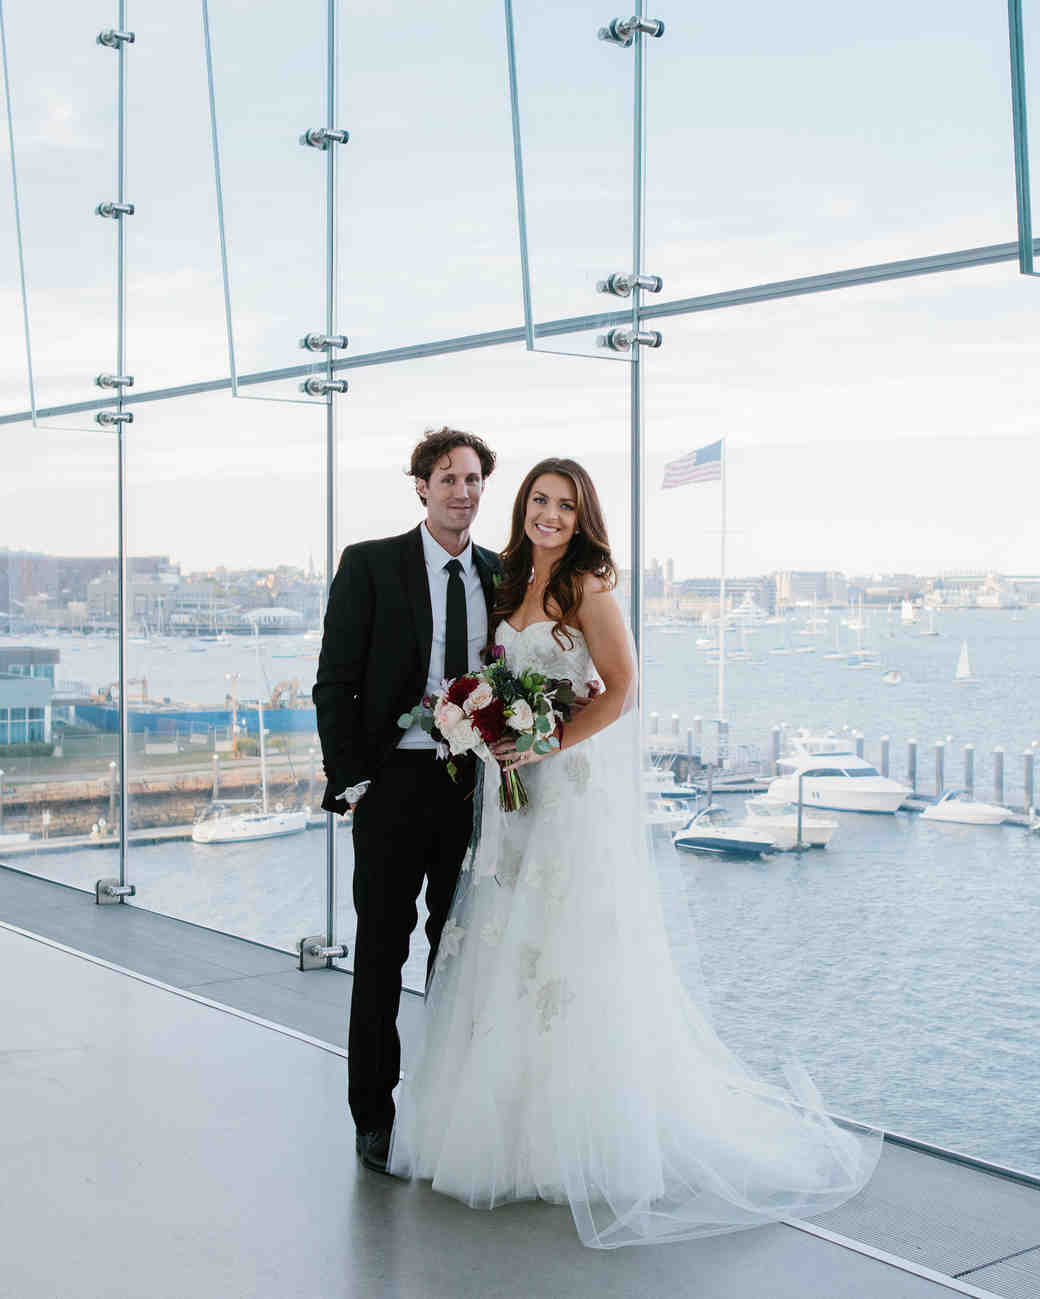 A Contemporary Wedding at a Boston Art Museum